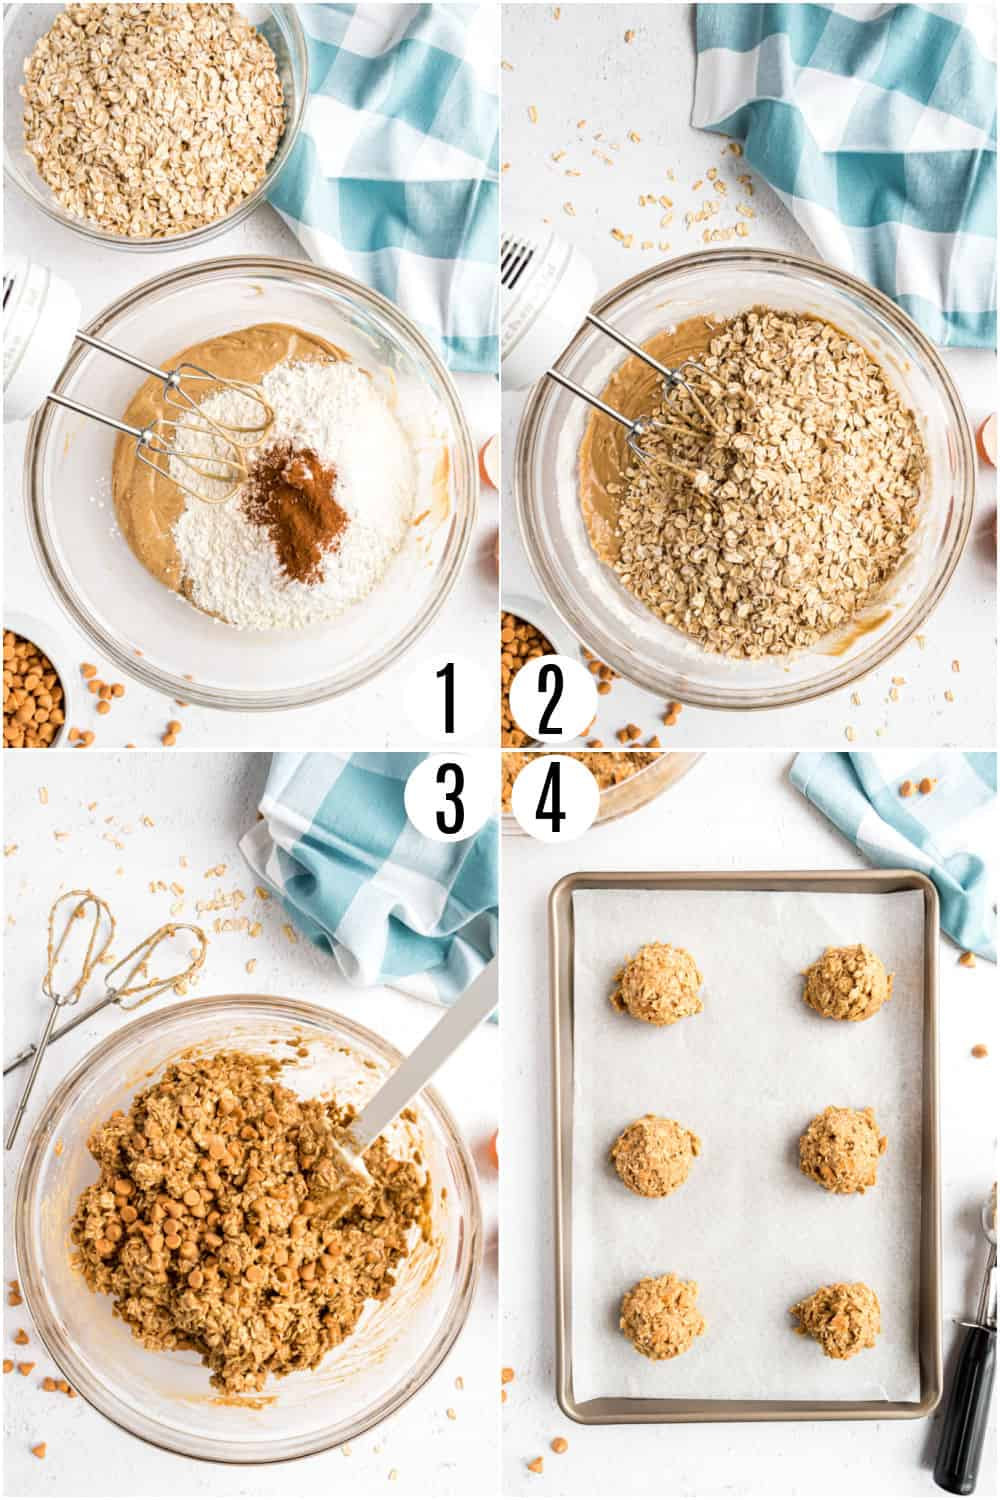 Step by step photos showing how to make oatmeal scotchies.